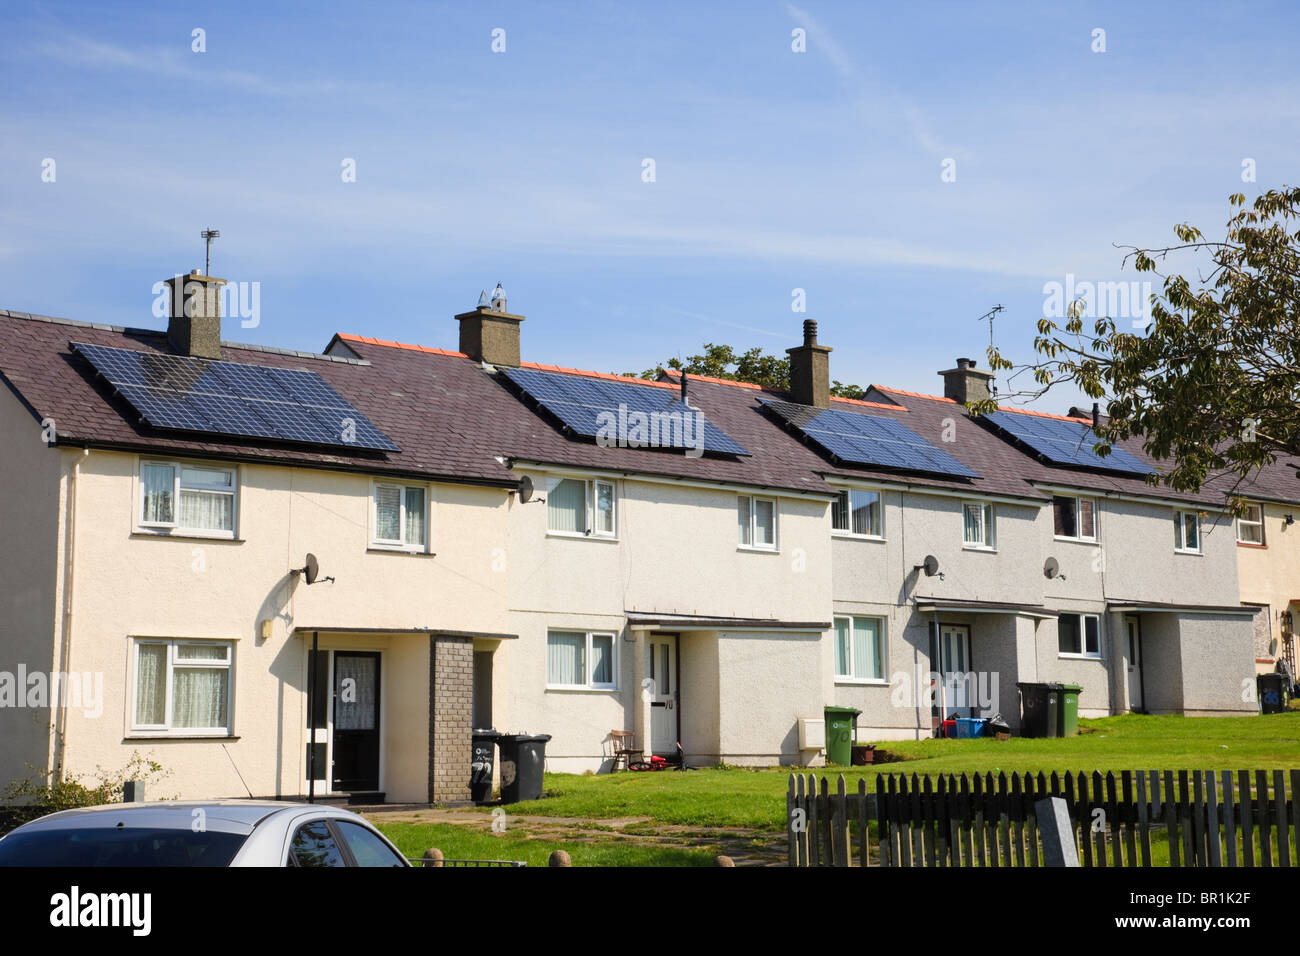 Row of urban terraced houses with solar panels on the roof in a residential council estate street. Llangefni Isle - Stock Image